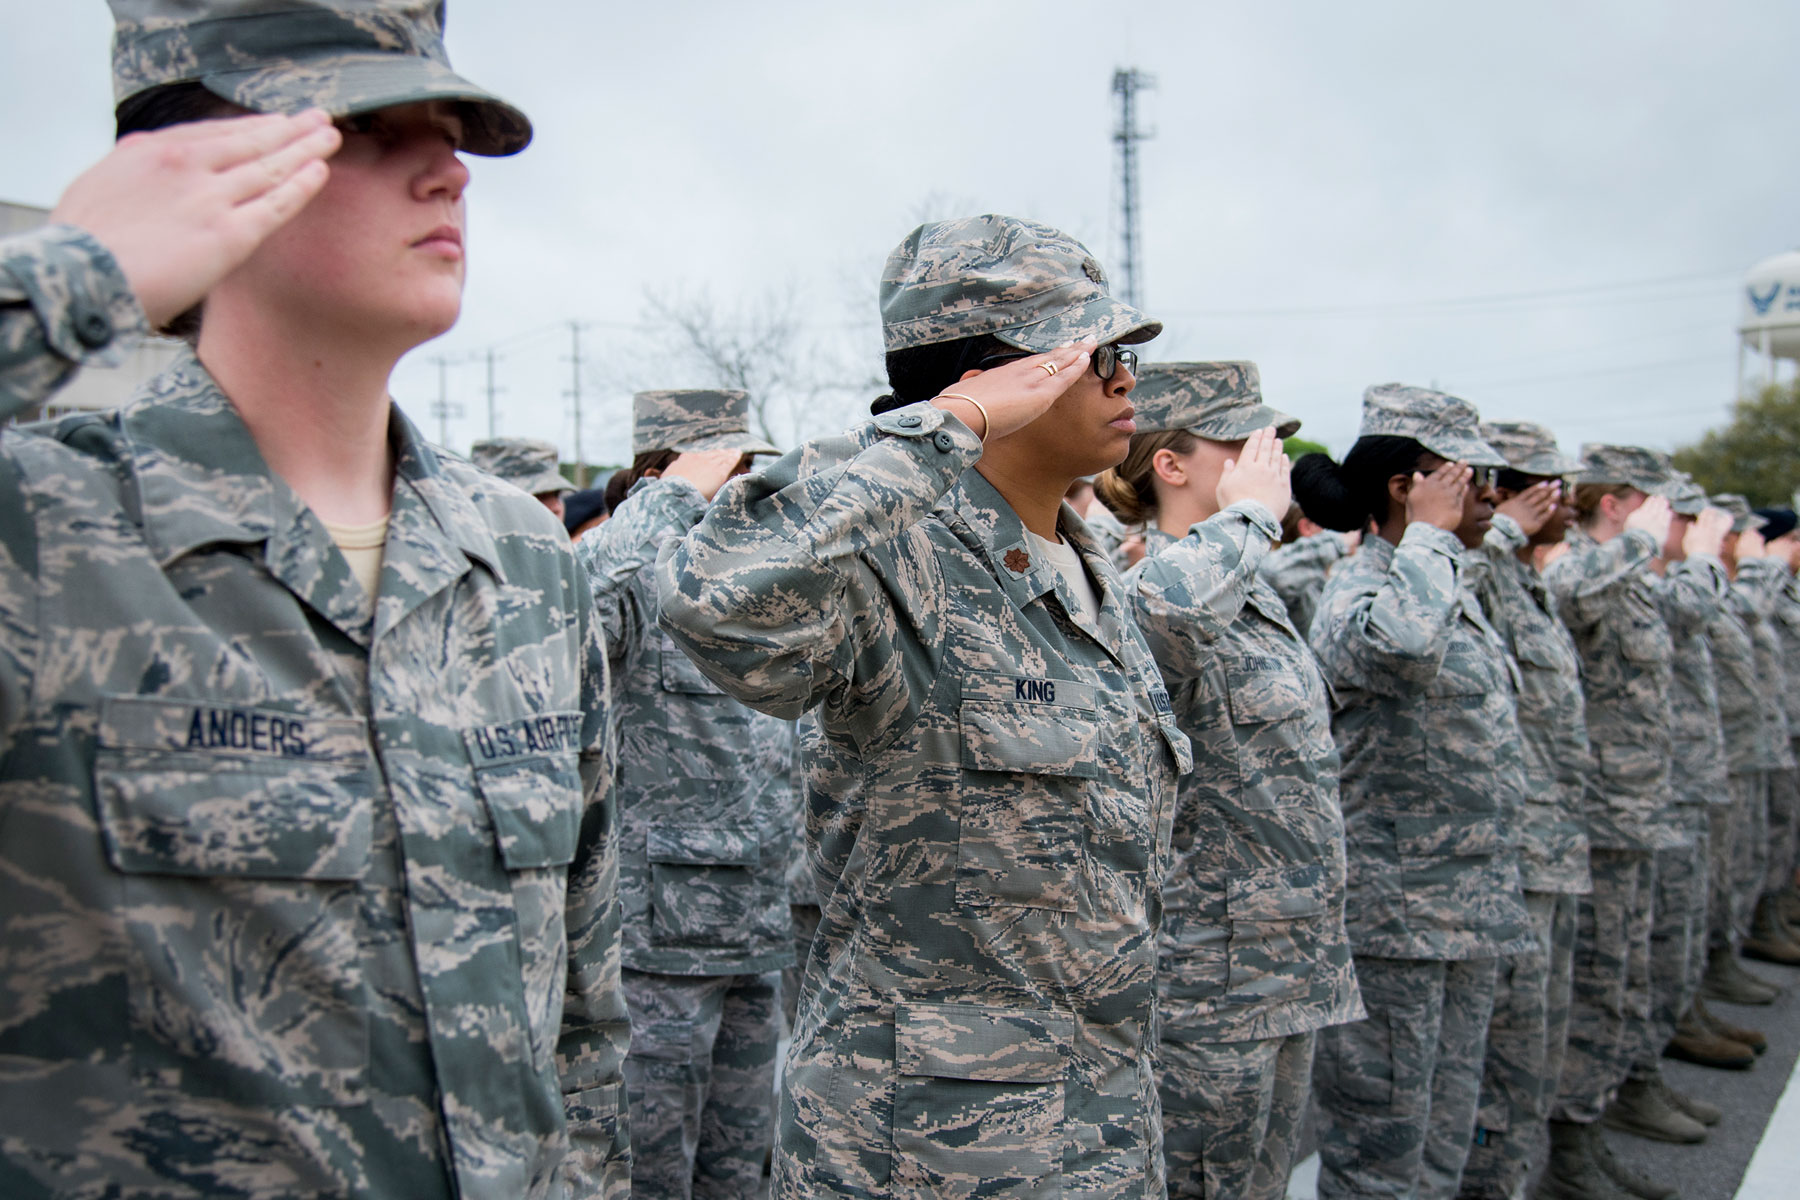 Sixth Female Airman Attempts Tacp Training Air Force Says